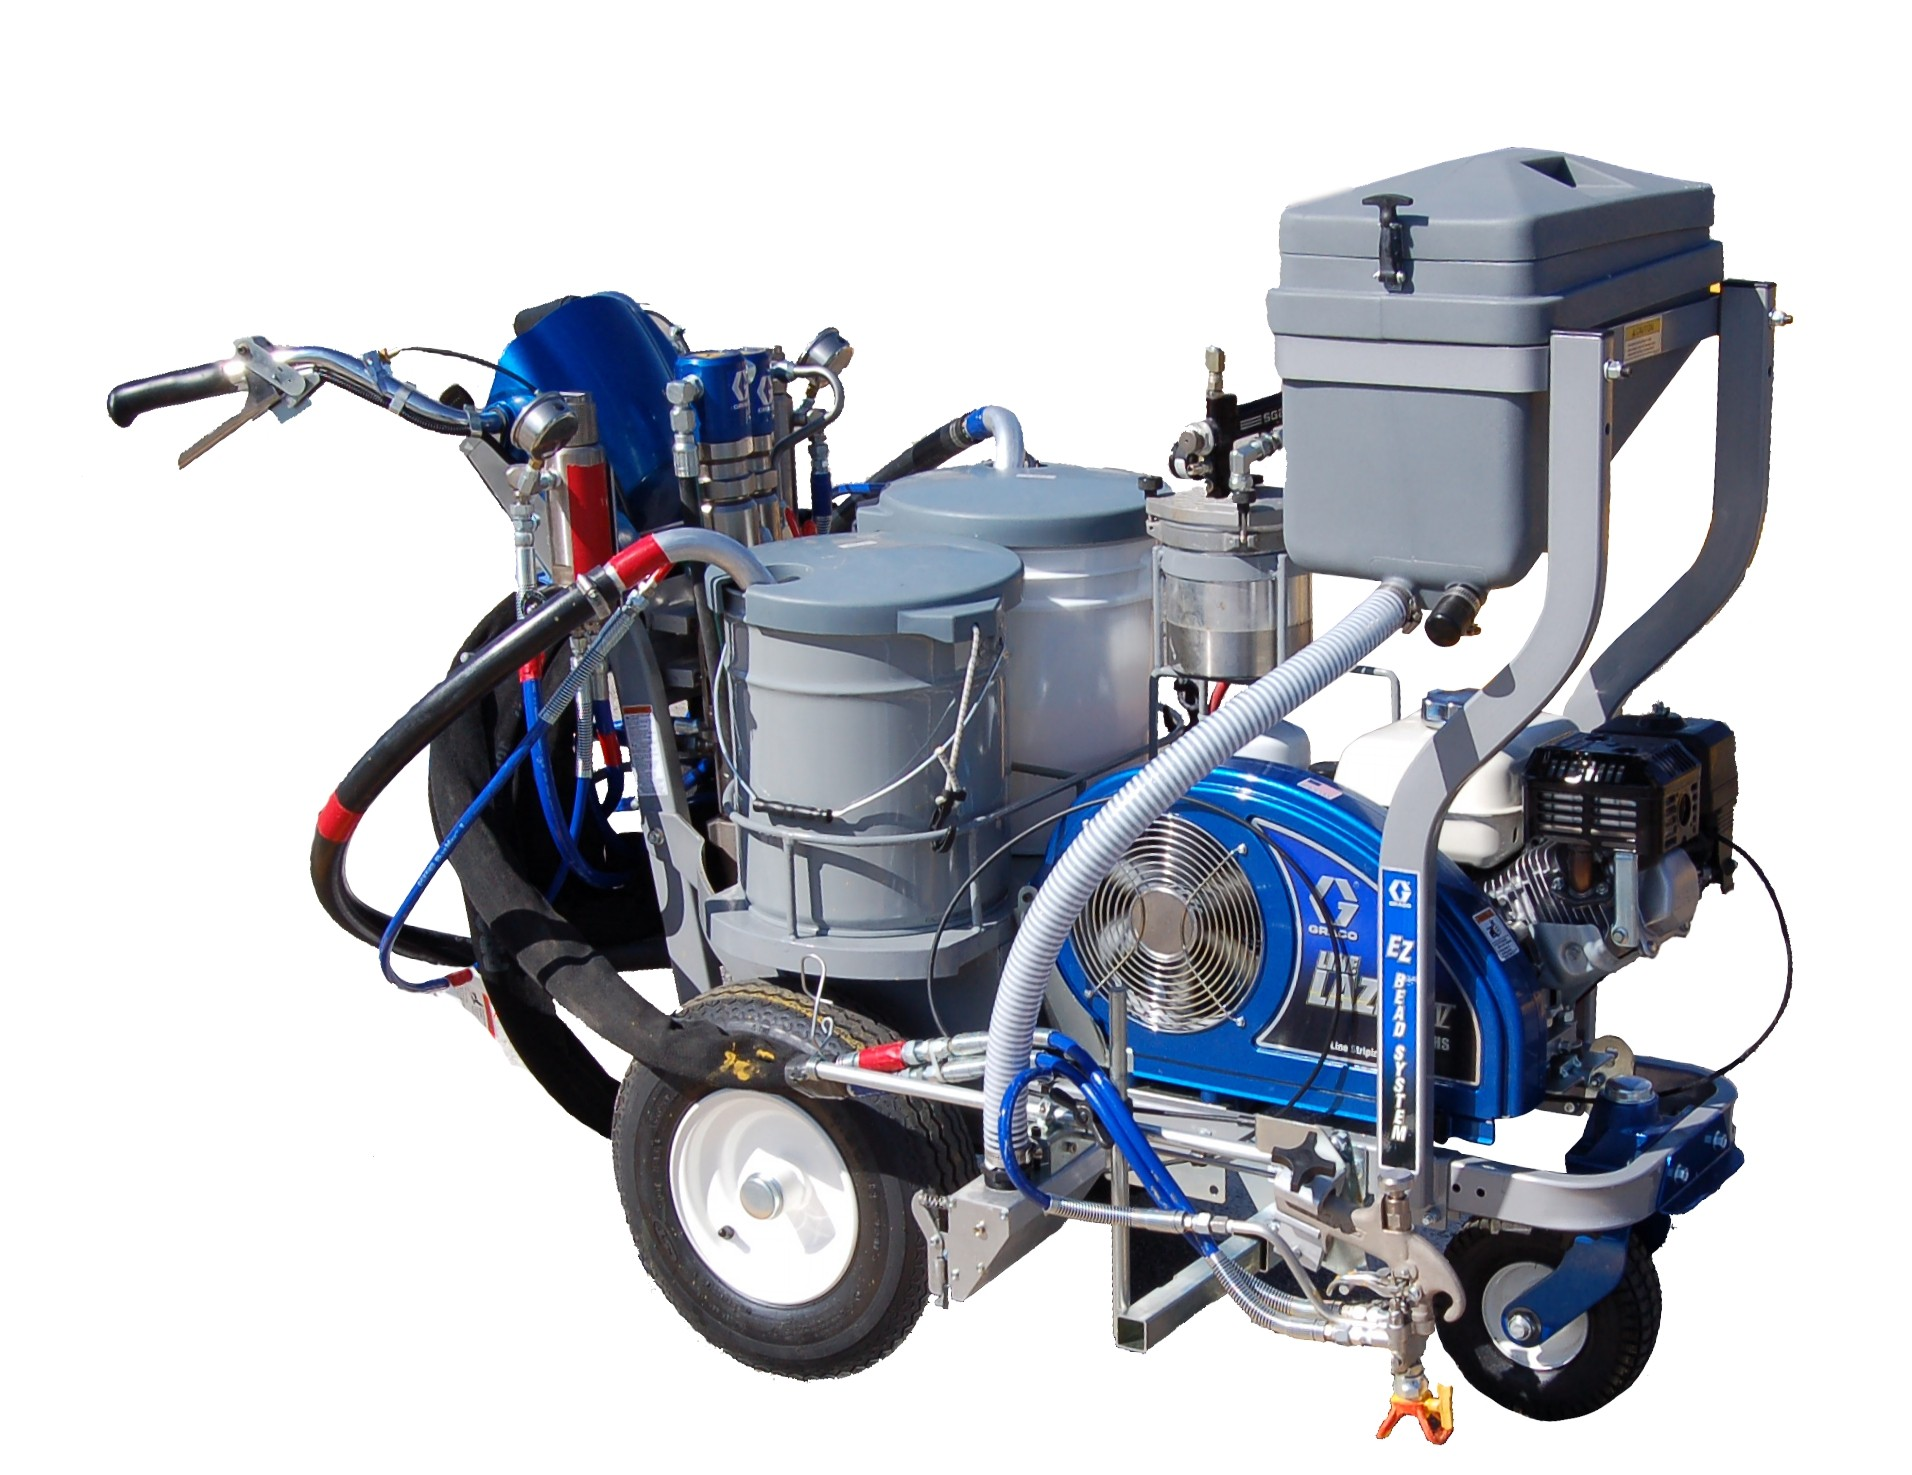 RAE's Modified Graco Plural Component 2-pump 1:1 Hydraulic